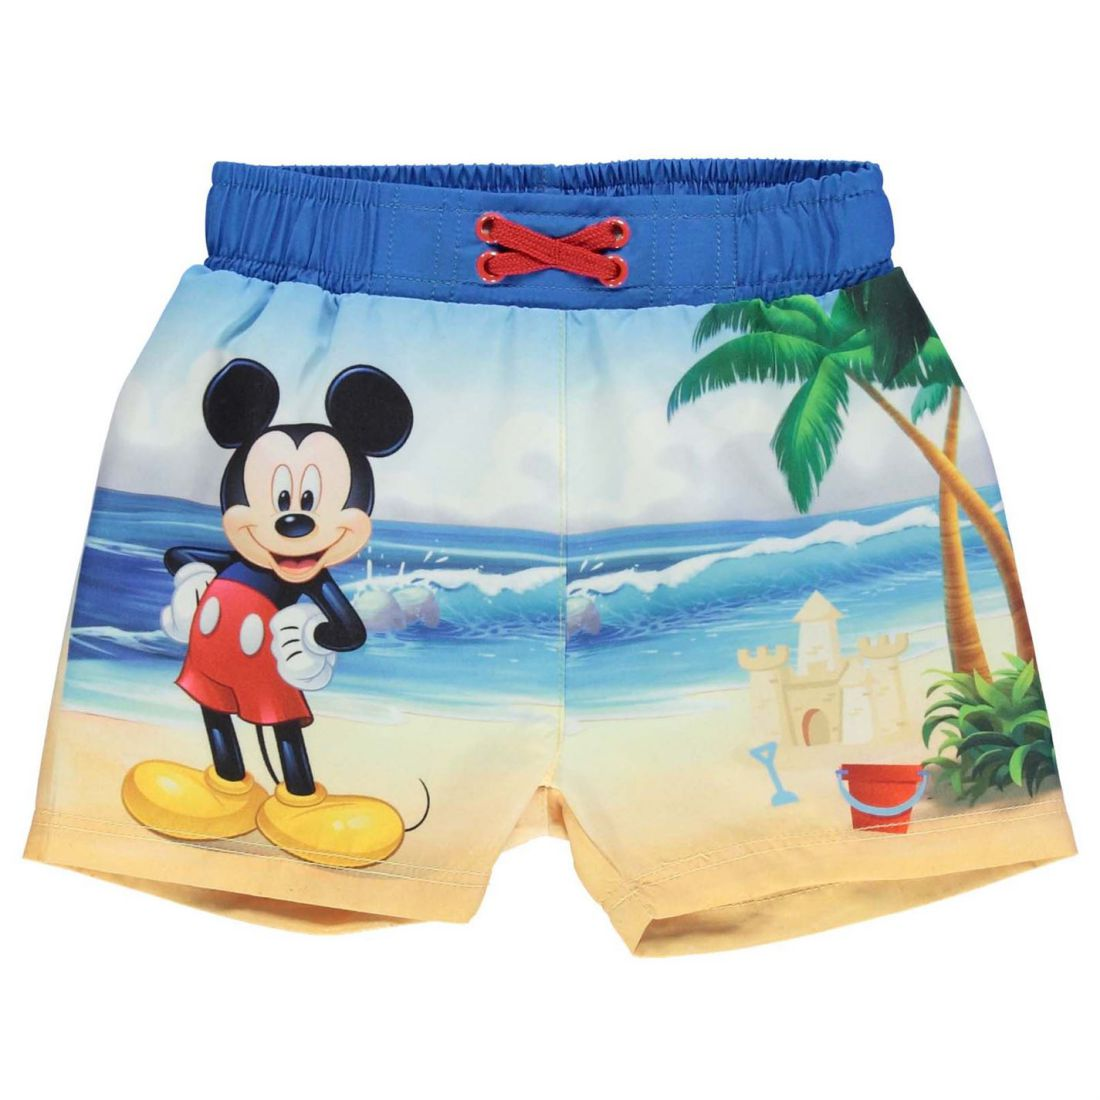 560a9999a8147 Image is loading Disney-Kids-Board-Shorts-Beach-Pants-Surf-Water-